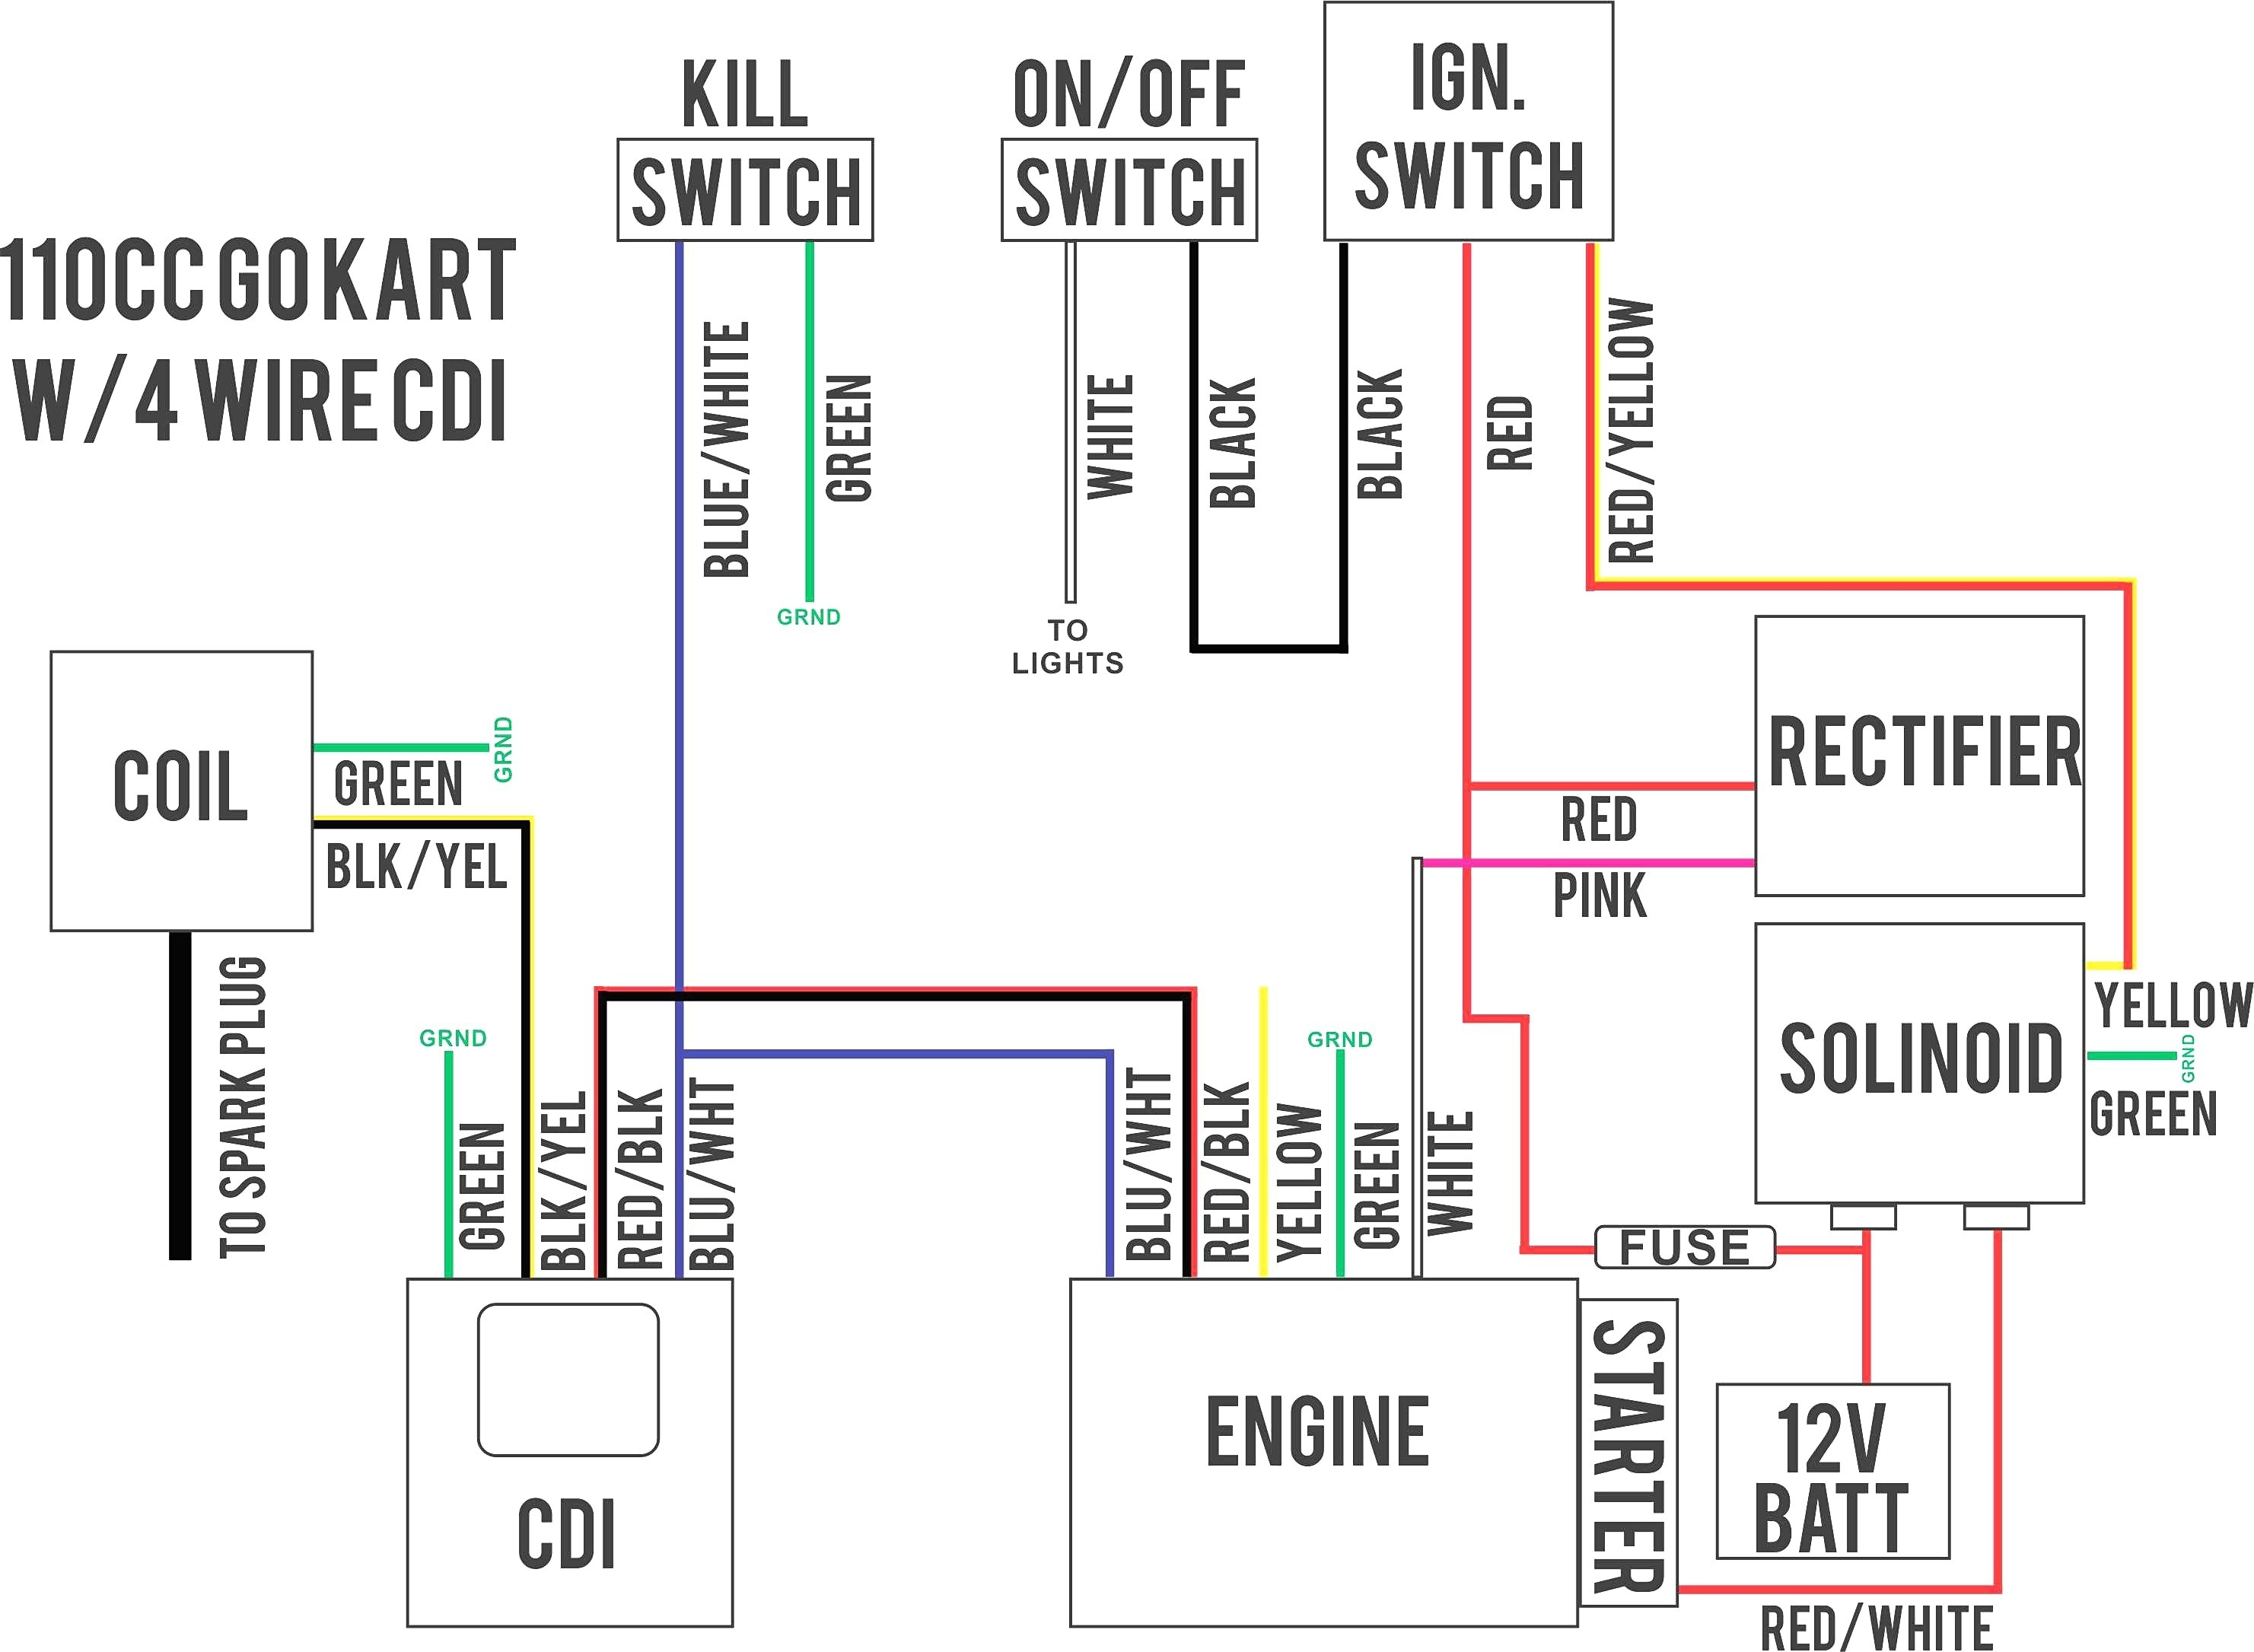 scooter ignition switch wiring diagram 12 volt electric hydraulic pump key gy6 50cc great installation of detailed rh 6 2 7 gospelworkshop kirchzarten de